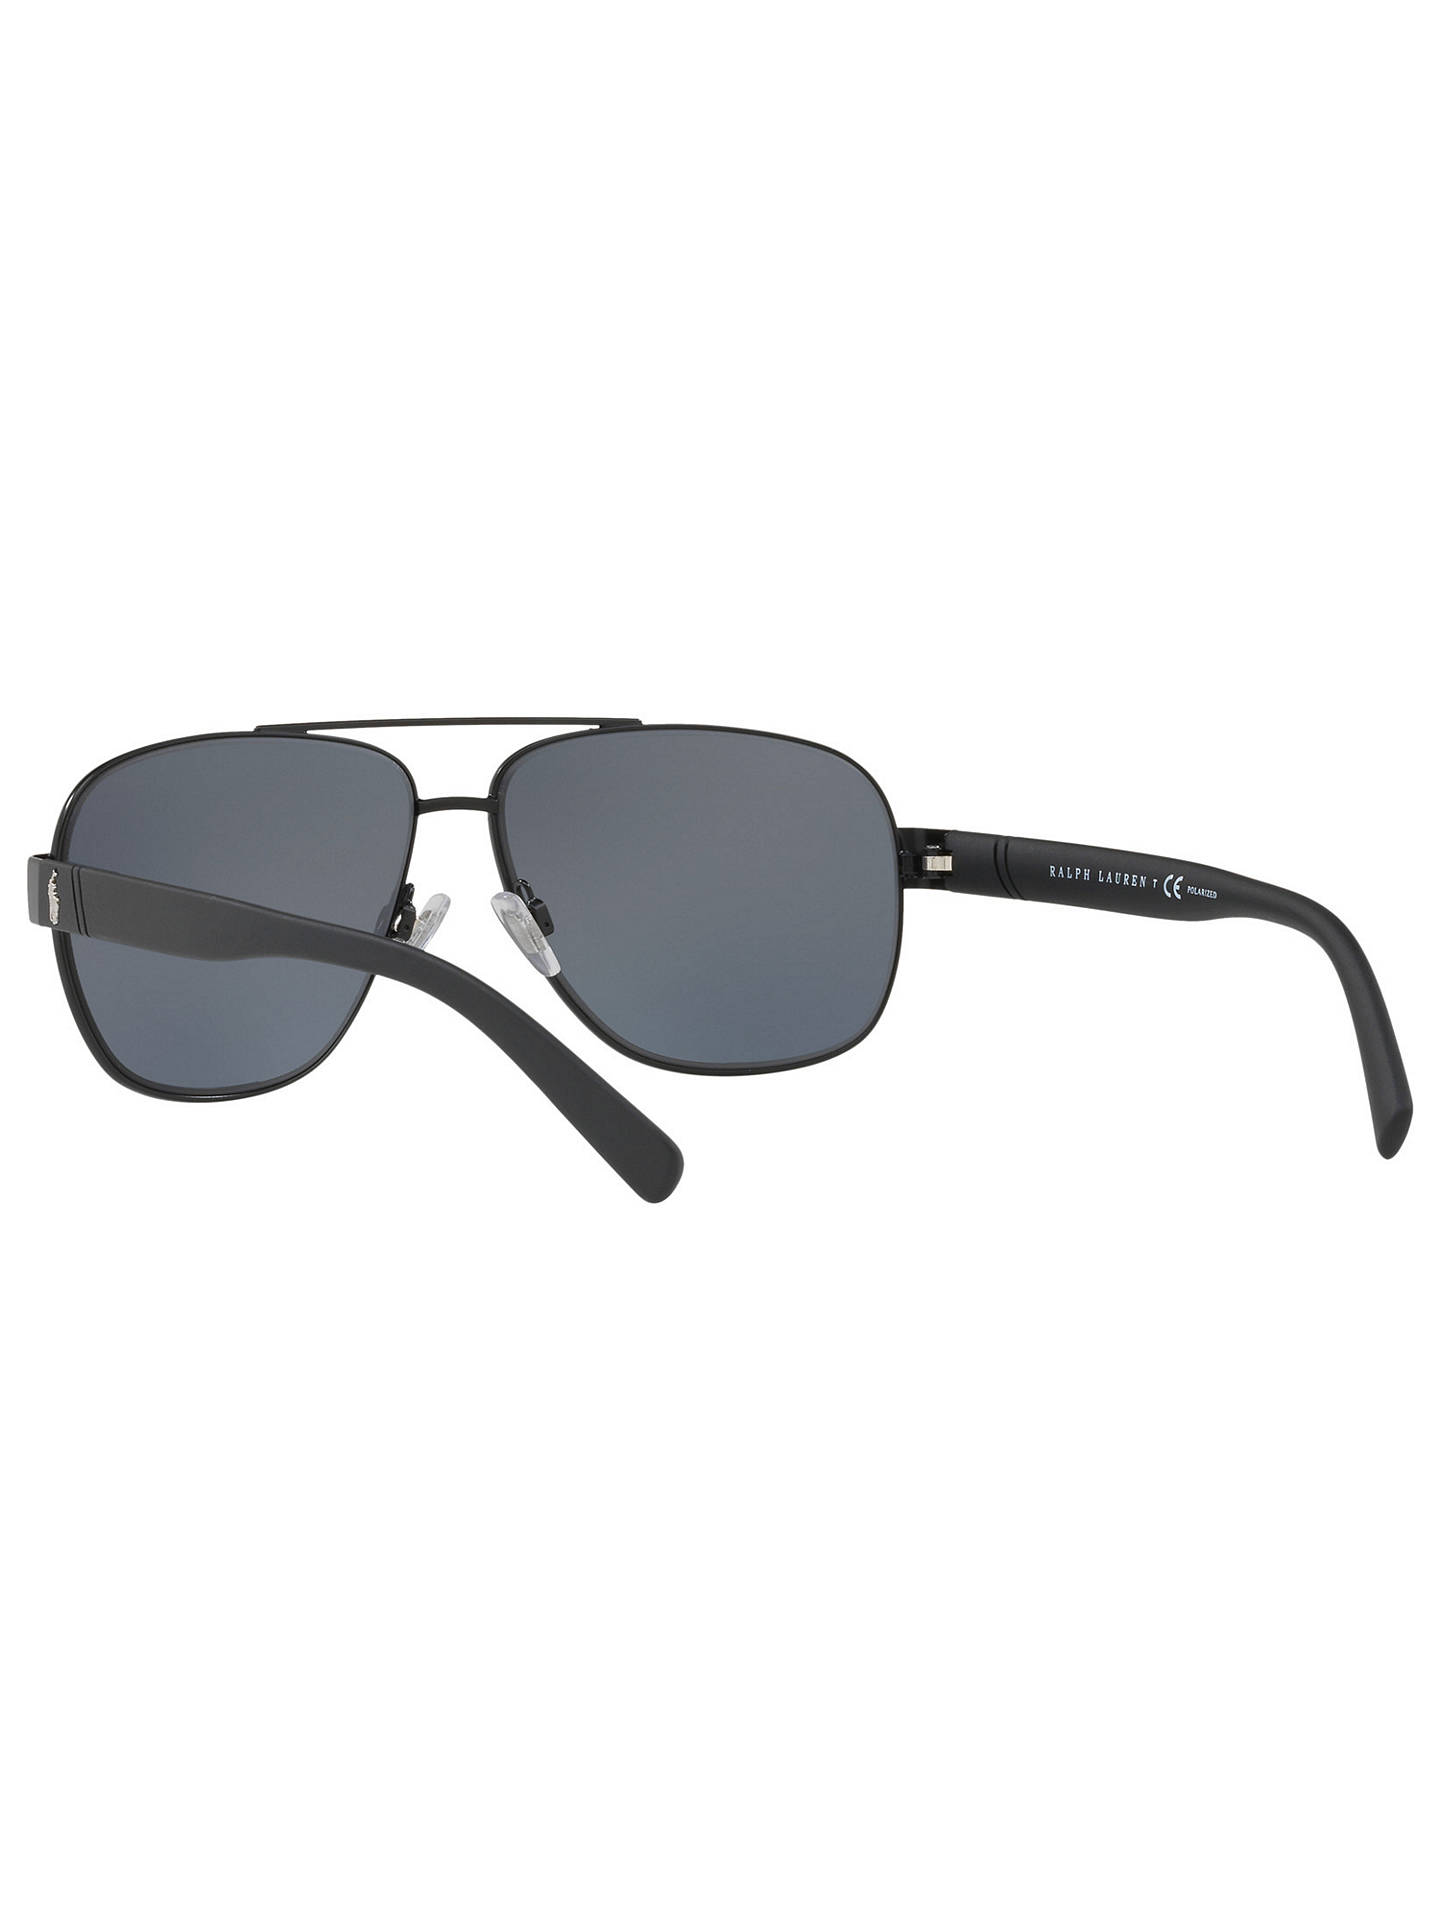 BuyPolo Ralph Lauren PH3110 Men's Polarised Aviator Sunglasses, Black/Grey Online at johnlewis.com